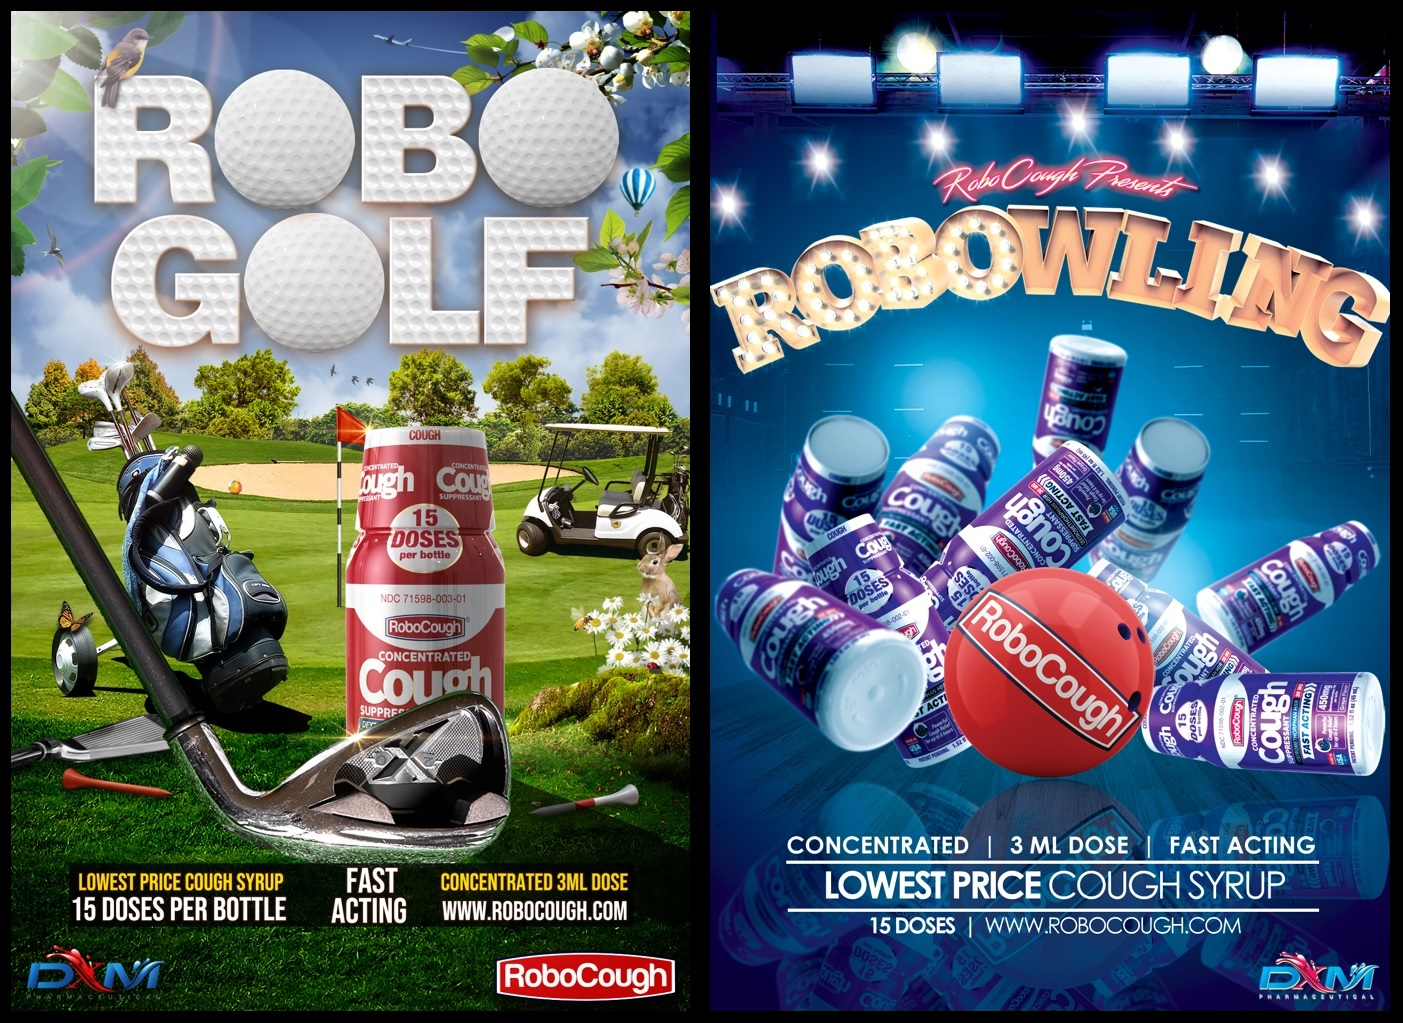 Robocough Robo cough is a product marketed as a powerful cough suppressant. robocough